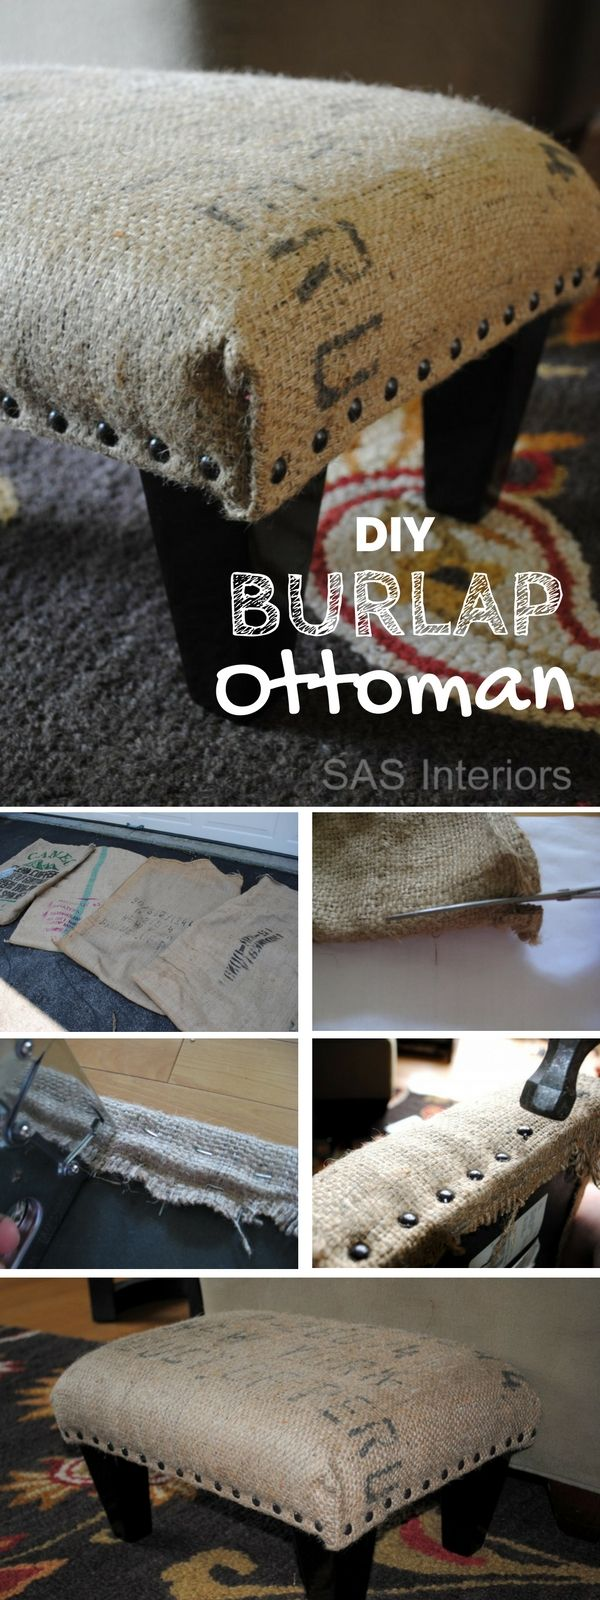 Make an easy DIY ottoman using burlap coffee sack @istandarddesign